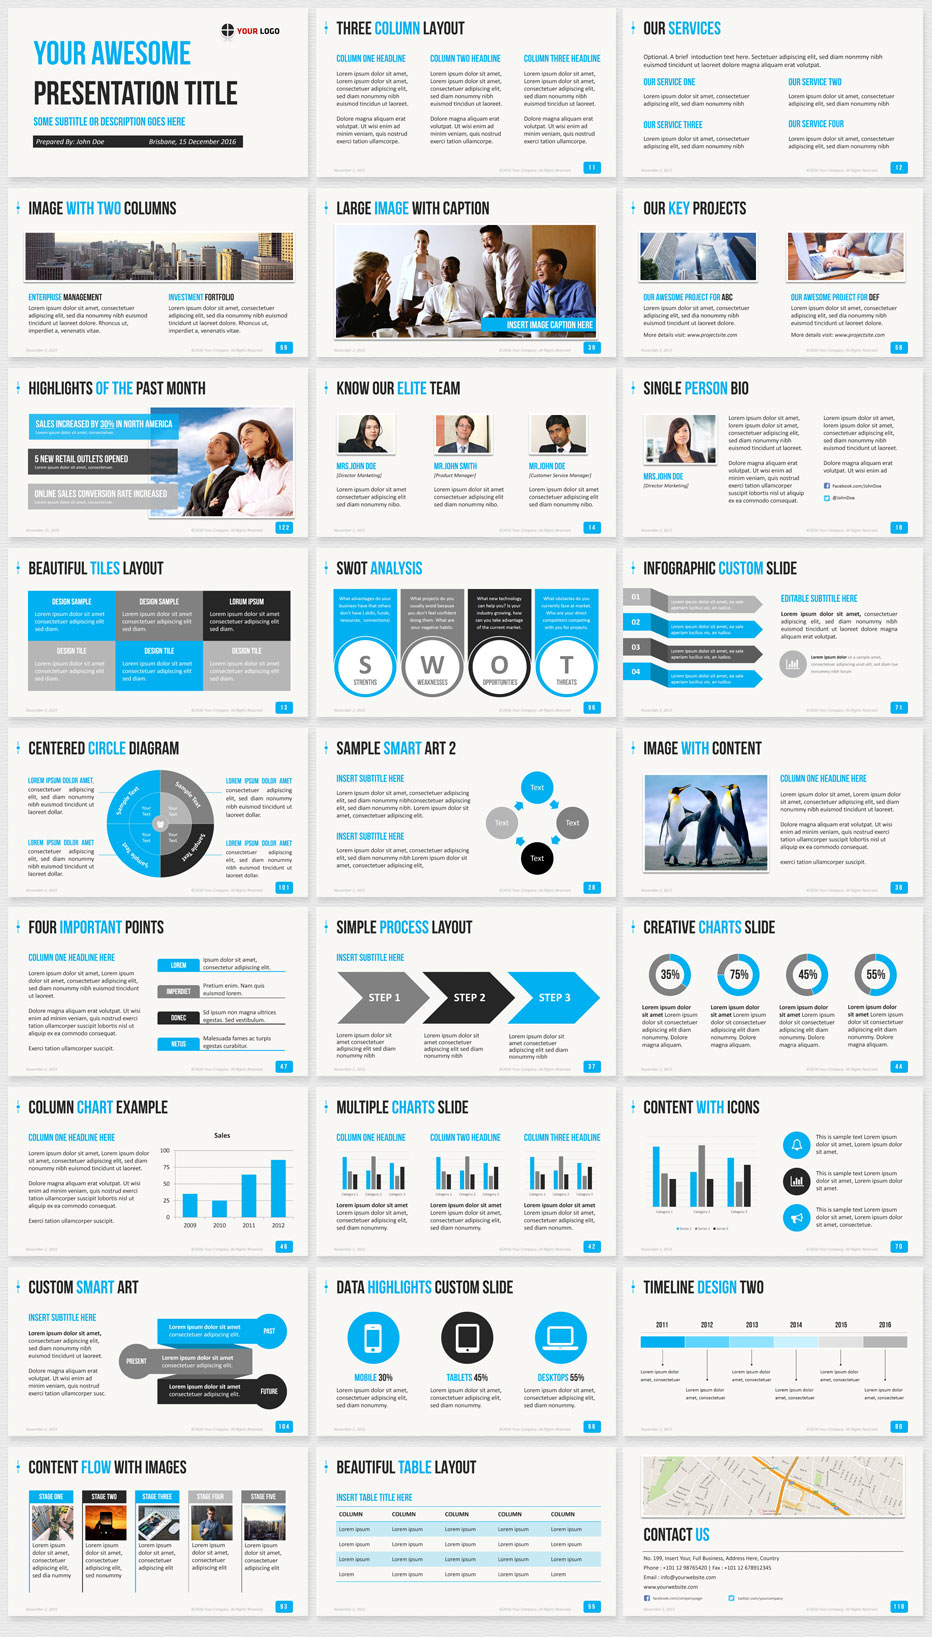 professional presentation templates or free powerpoint themes, Presentation templates